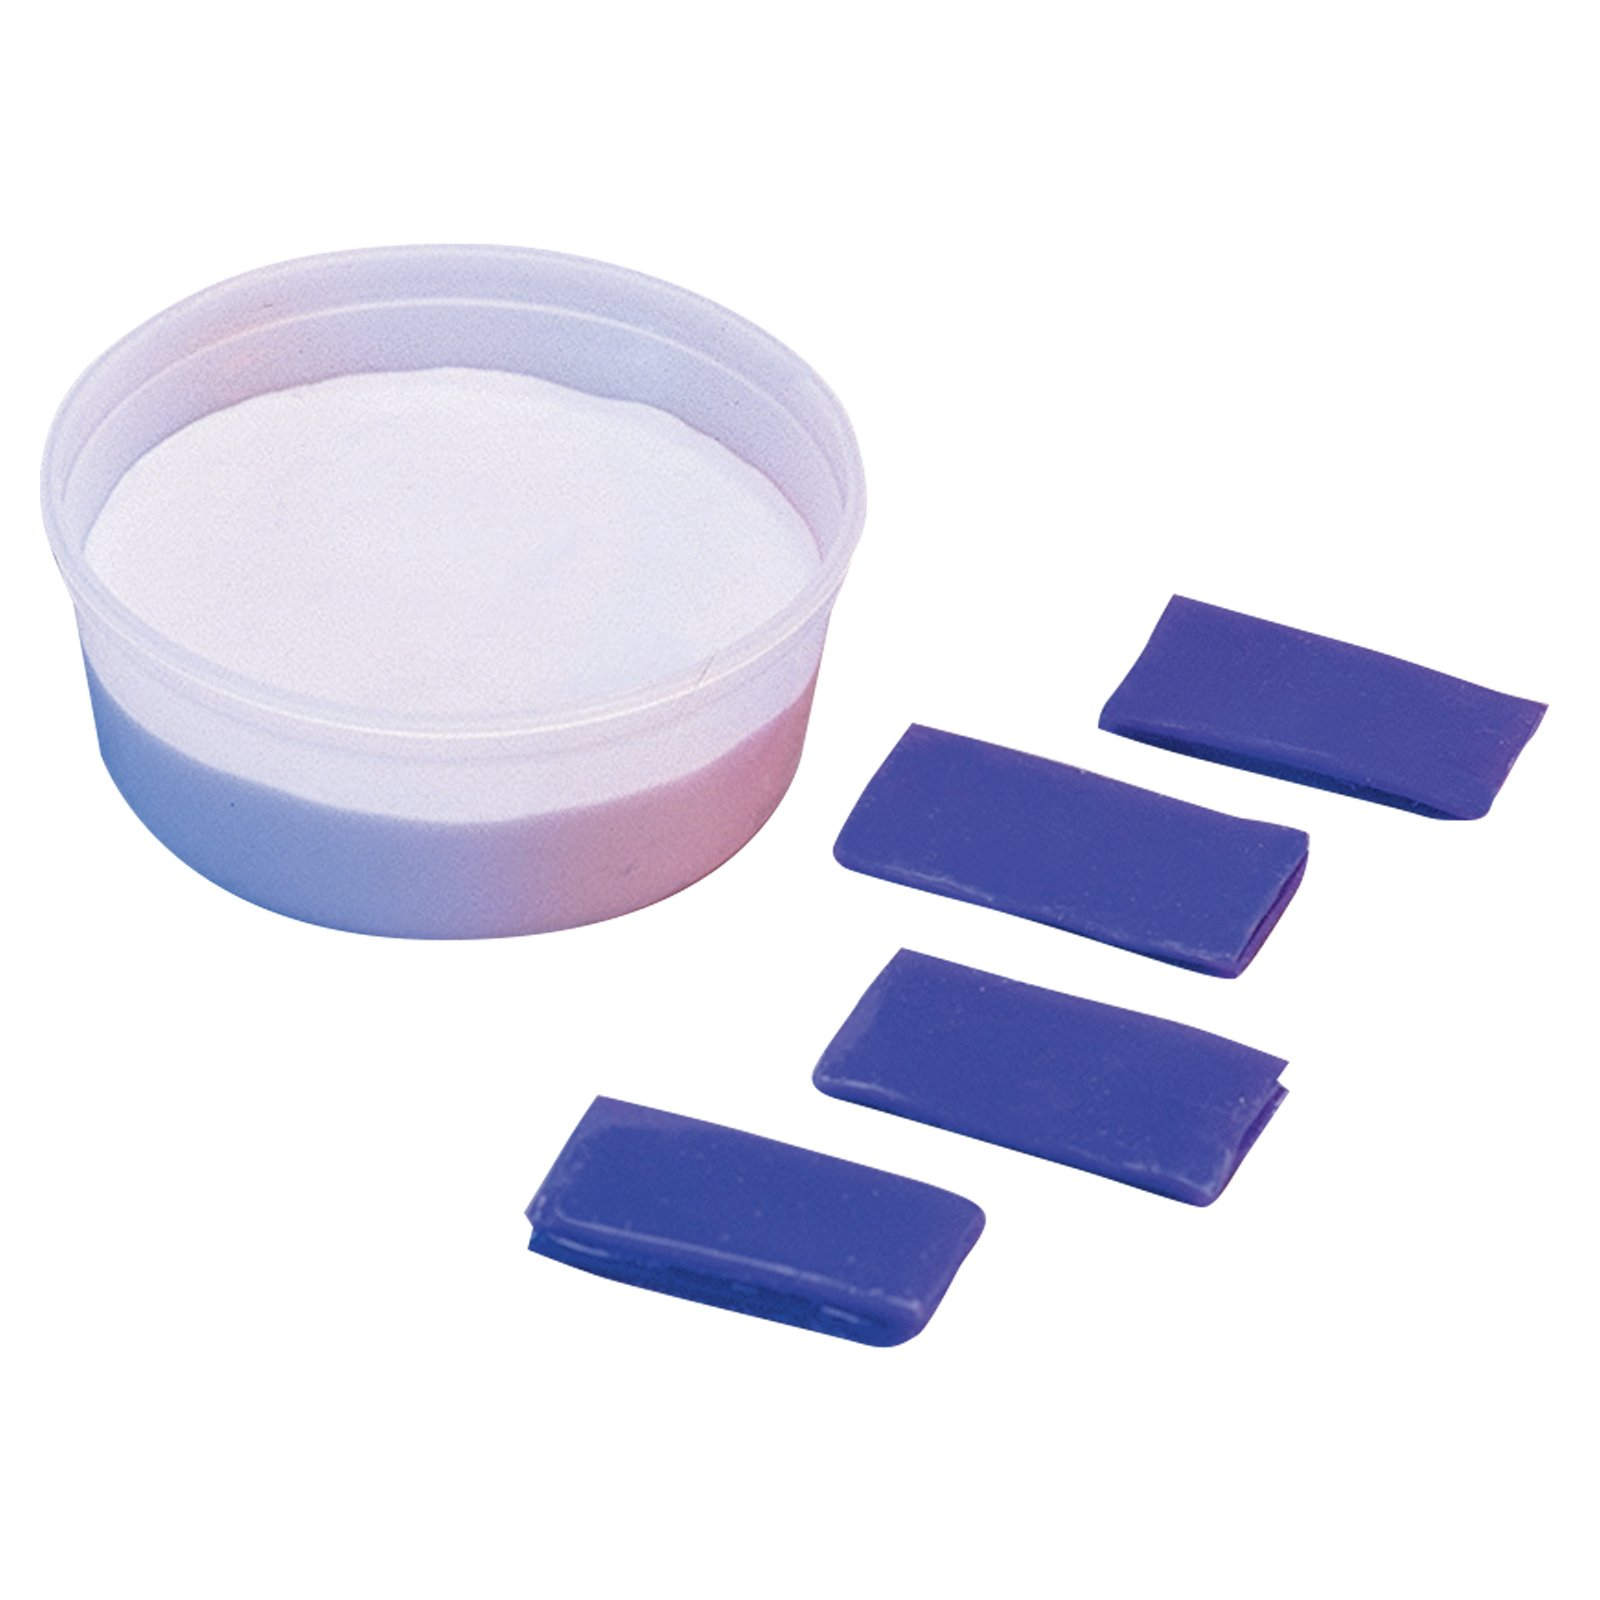 Sammons Preston Progressive Putty for Physical Therapeutic Hand Exercises, Flexible Putty for Finger & Hand Recovery and Rehabilitation, Occupational Therapy, 5 lbs Putty Base, With 32 Progress Chips